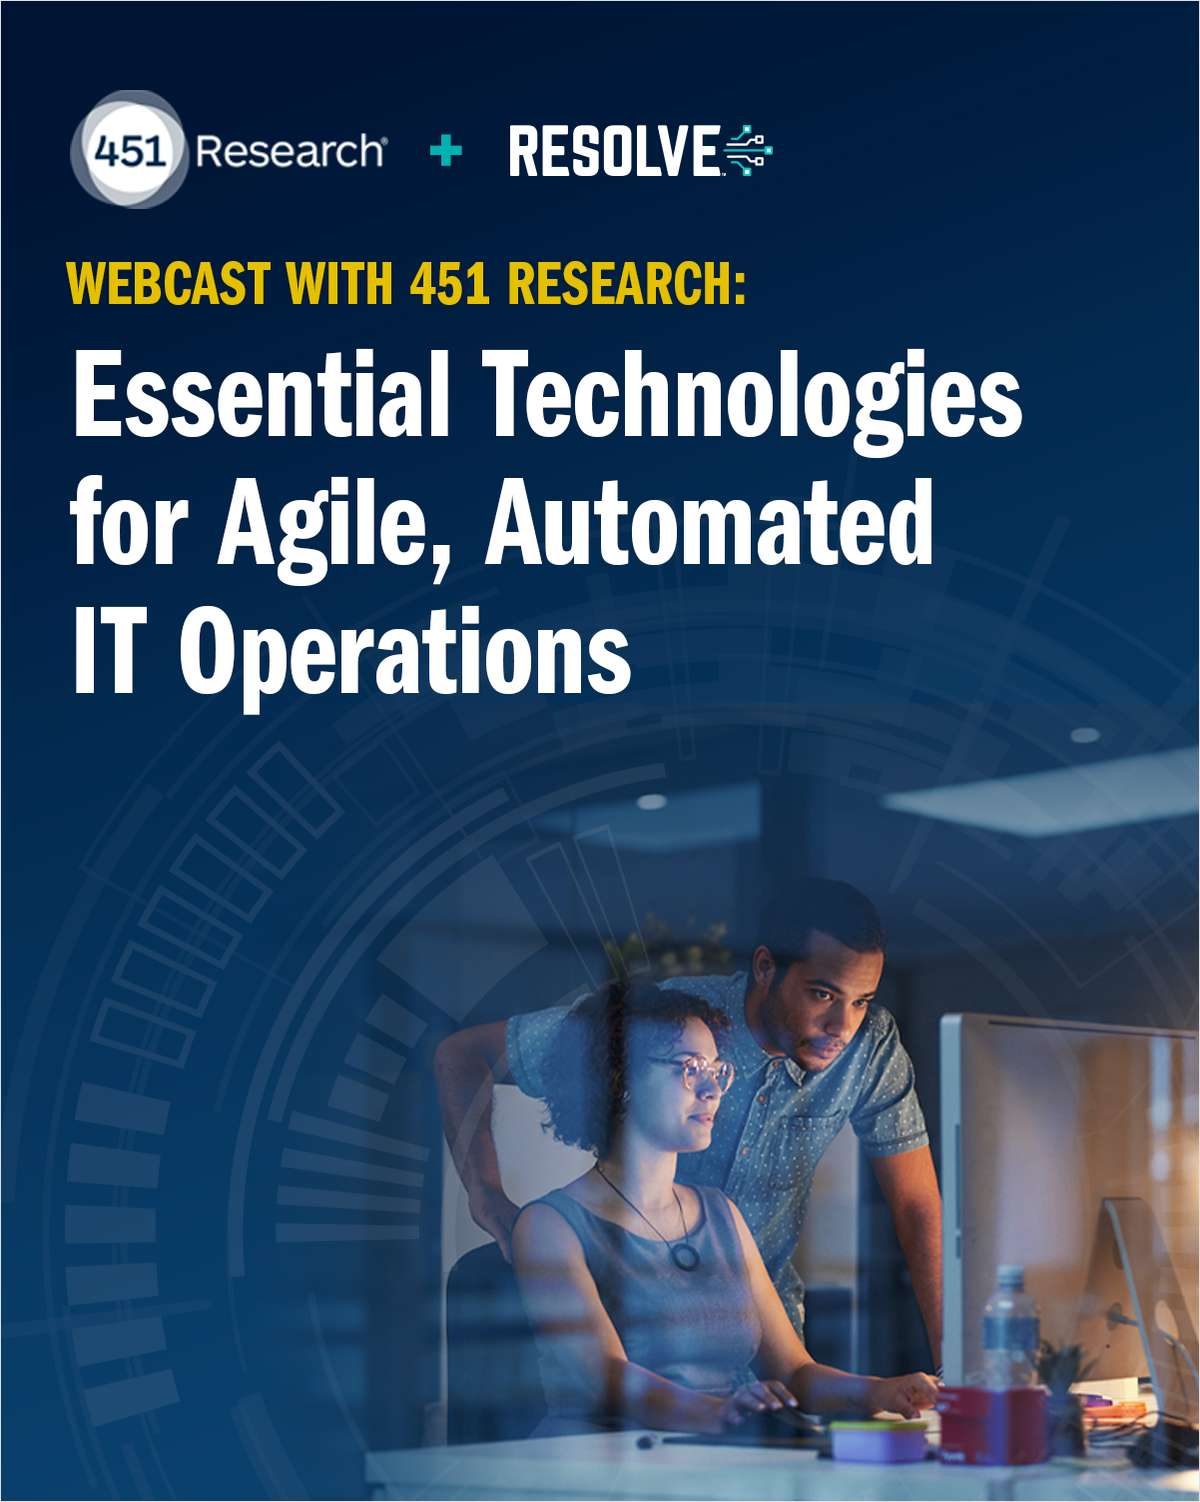 Essential Technologies for Automated IT Operations with 451 Research